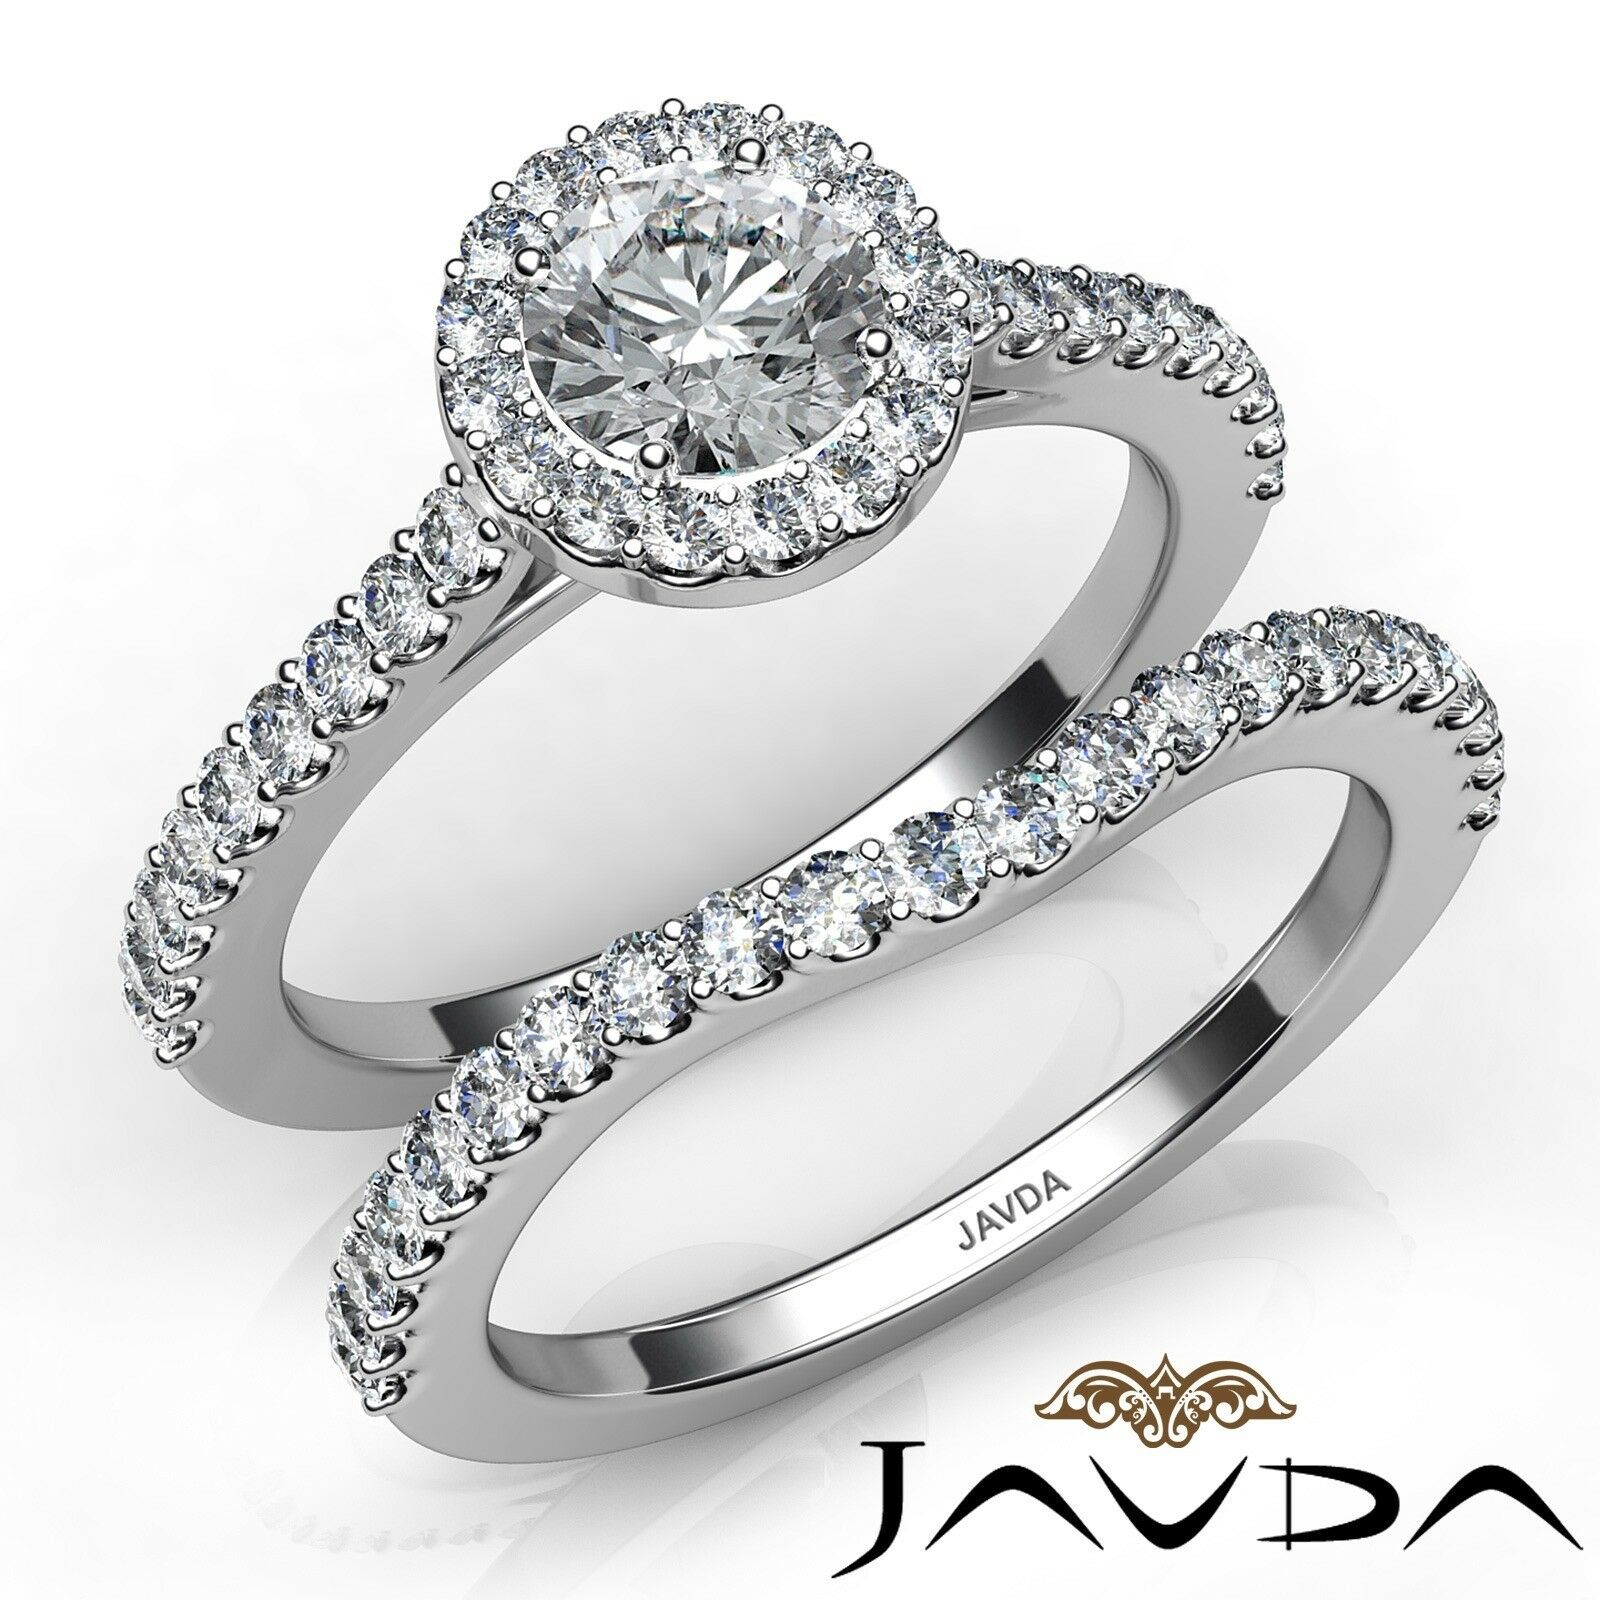 1.45ctw U Prong Halo Bridal Round Diamond Engagement Ring GIA F-VS1 White Gold